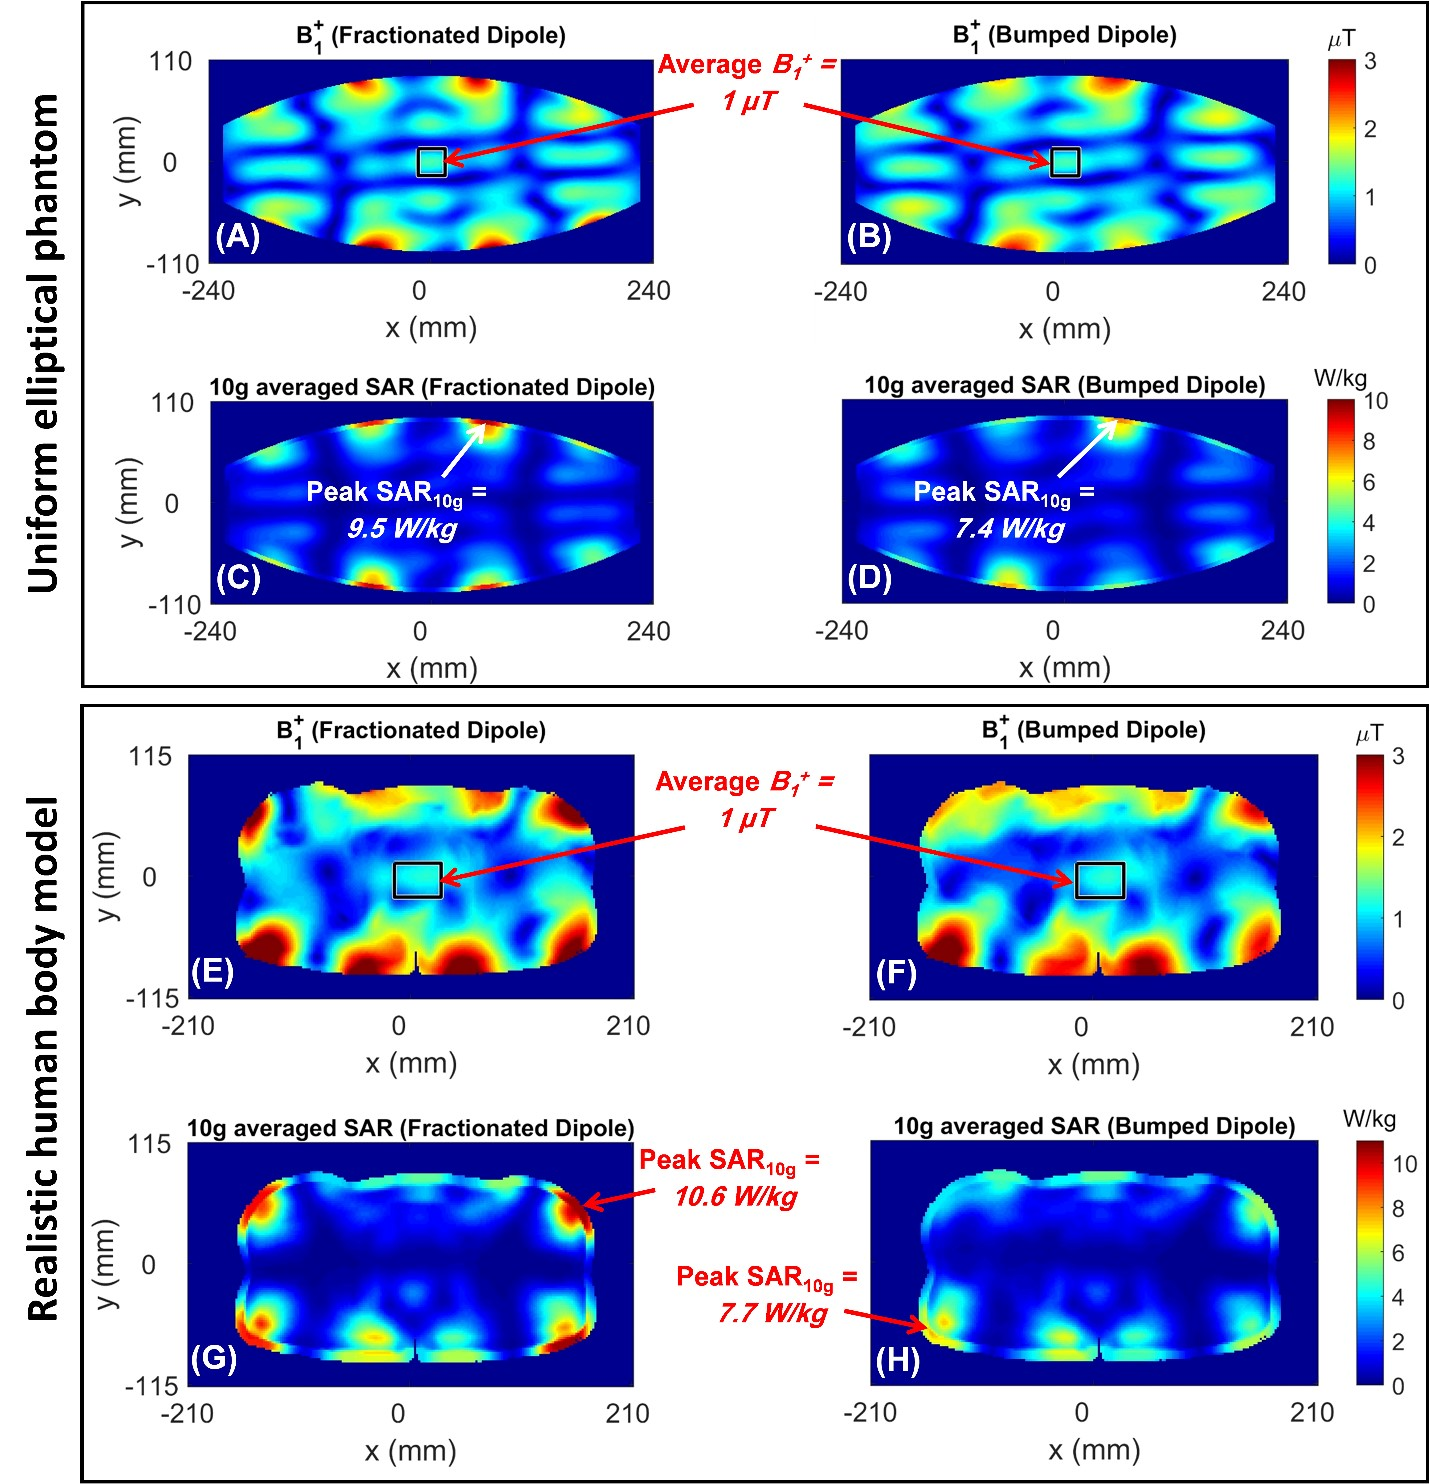 UMRAM'dan Yeni Bir Makale; Improving radiofrequency power and specific absorption rate management with bumped transmit elements in ultra‐high field MRI